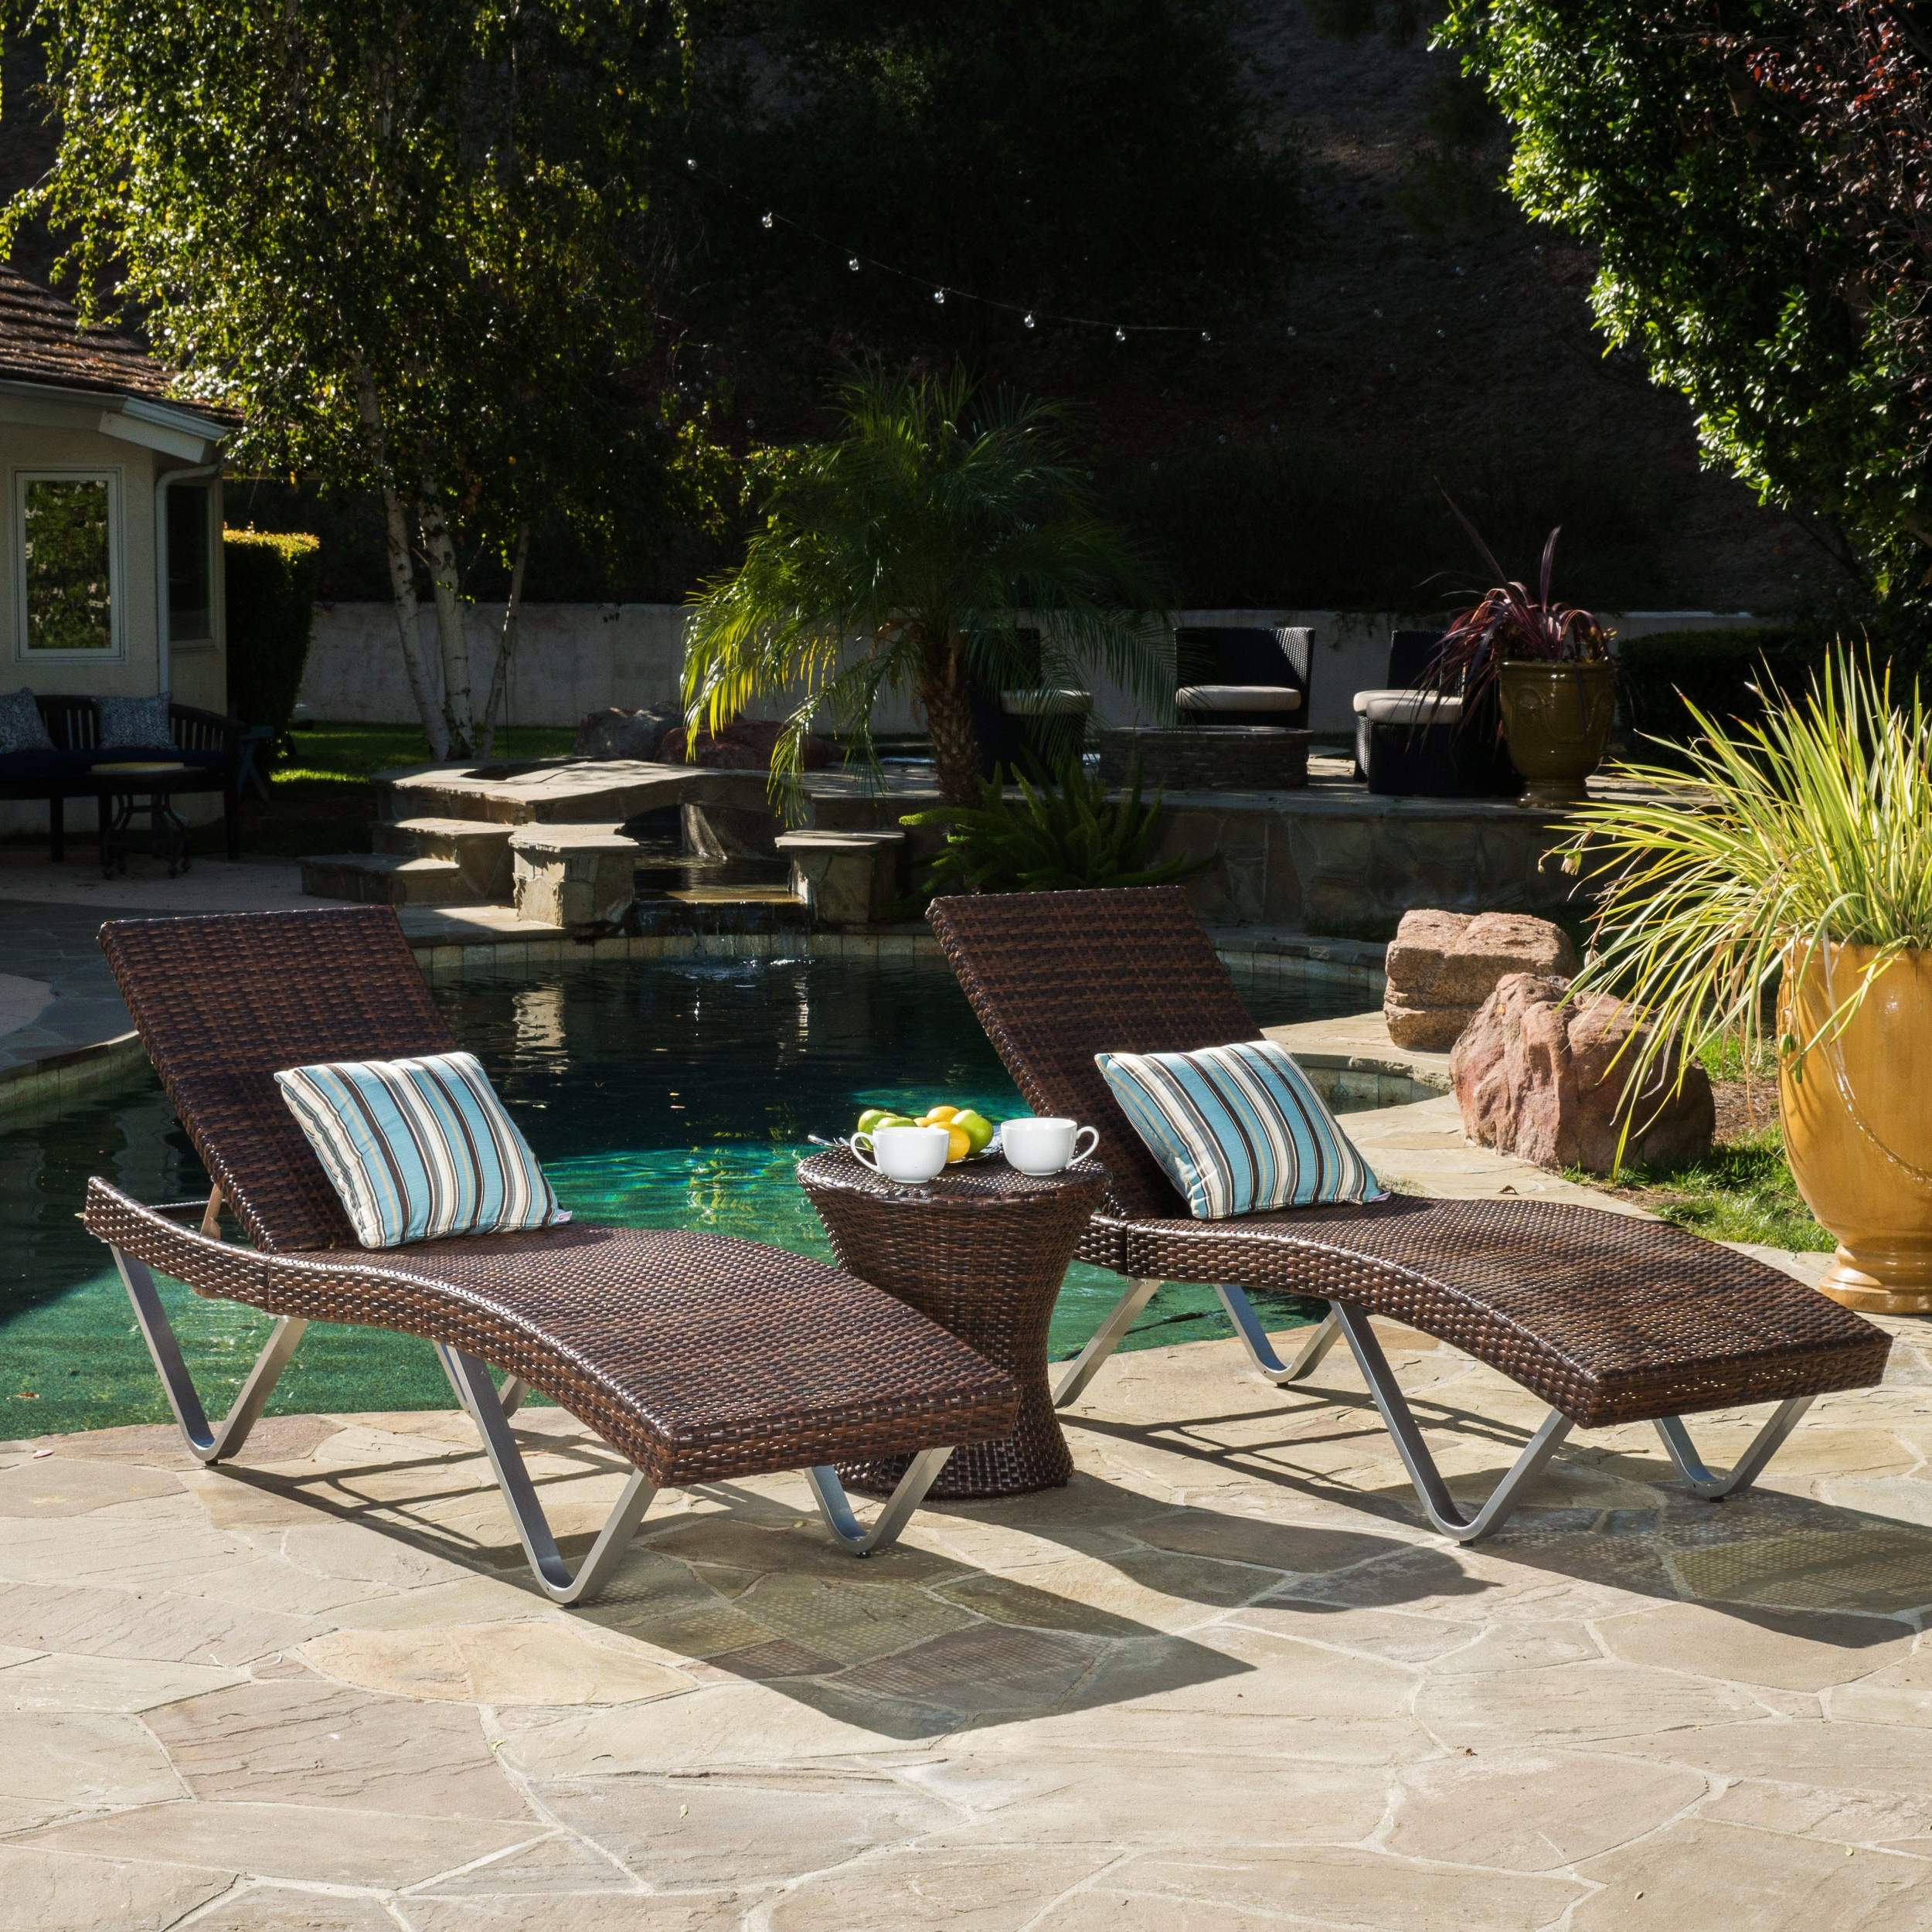 San Marco Outdoor 3 Piece Wicker Chaise Lounge Setchristopher Knight Home With Regard To Recent Outdoor 3 Piece Wicker Chaise Lounges And Table Sets (View 5 of 25)